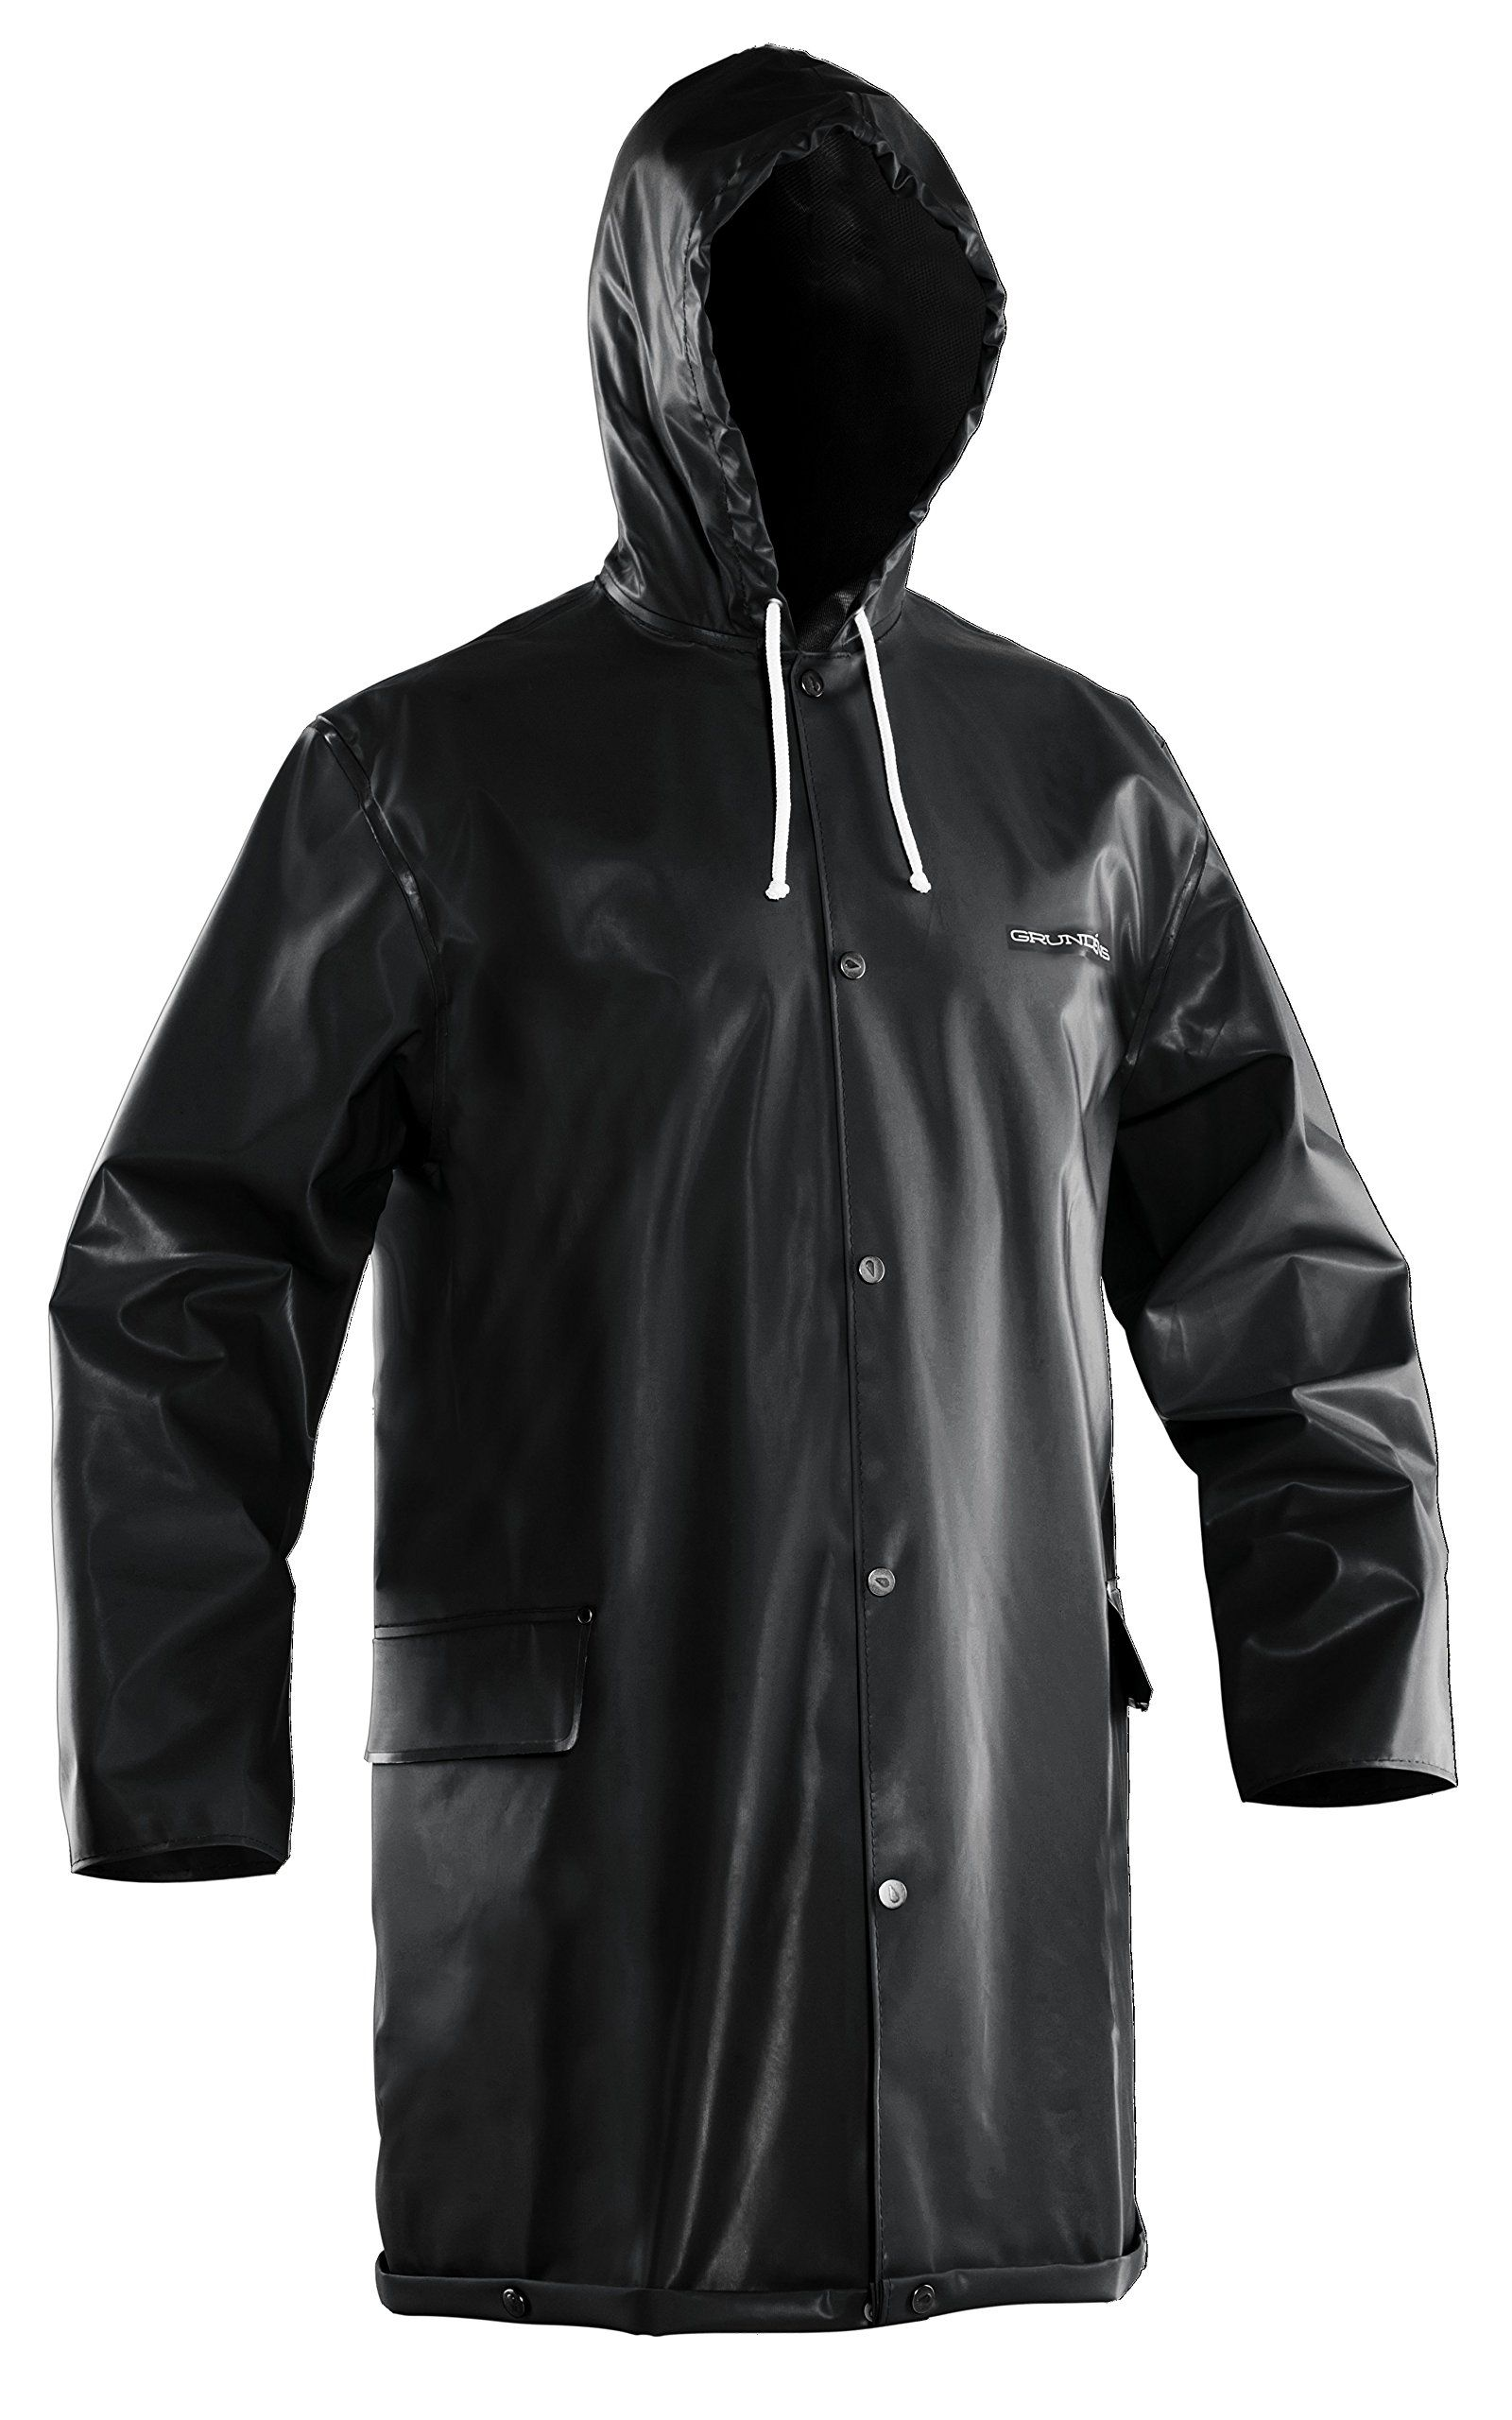 2e24ec79e Grundéns 345 Coat £67 3/4-length coat with adjustable hood. Double ...